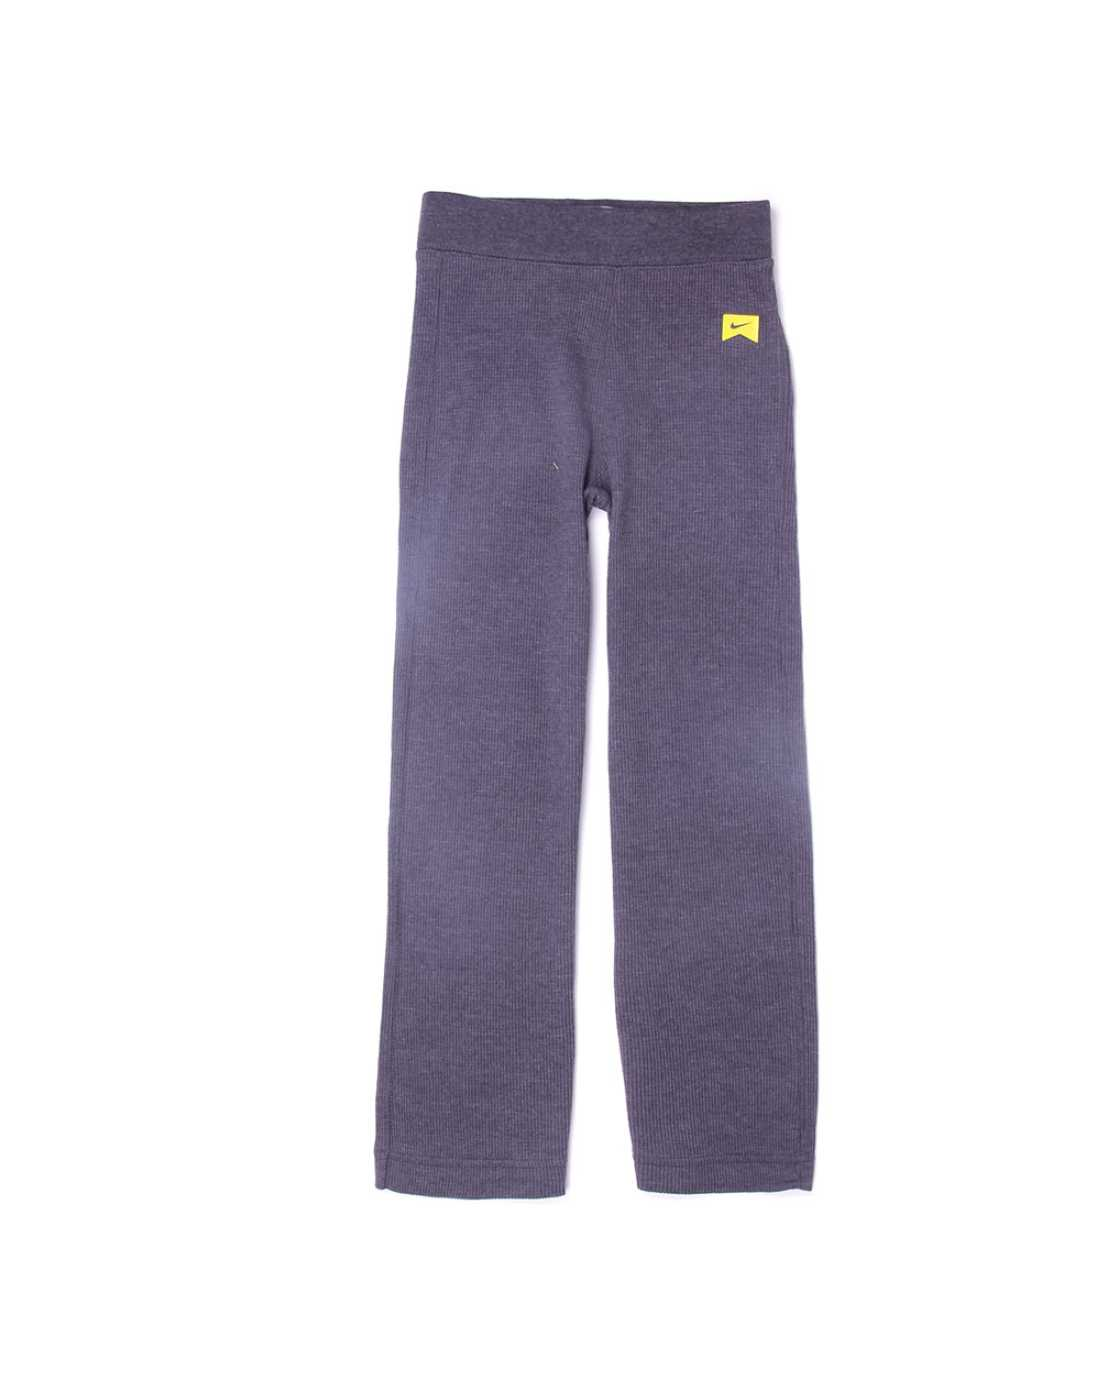 Nike Girls Casual Wear Solid Track Pant